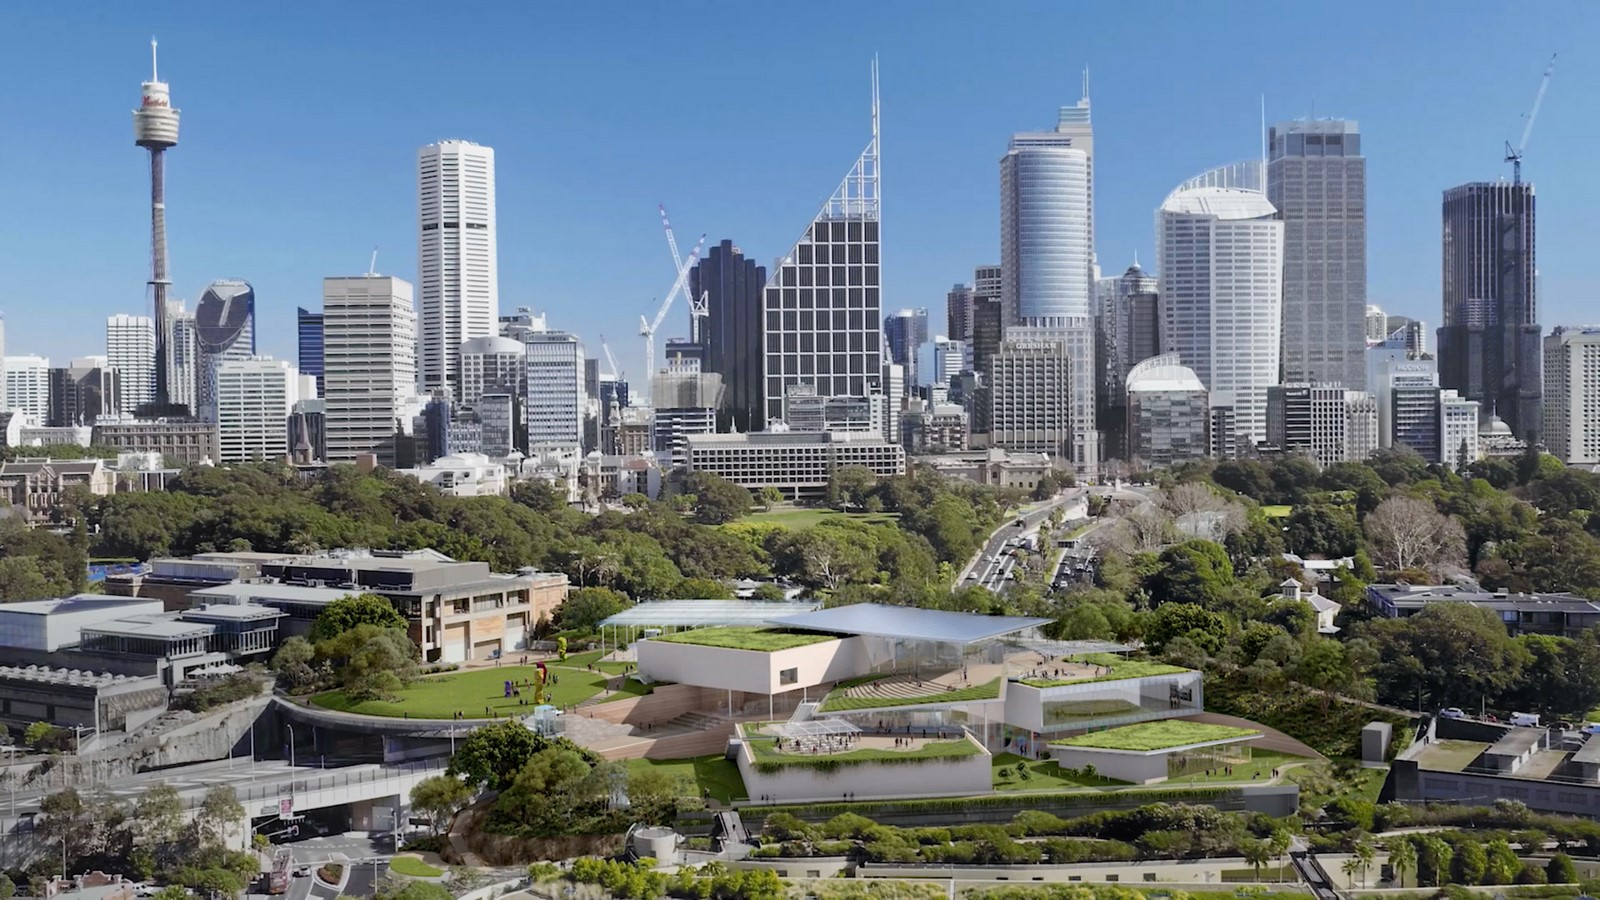 New Images For Art Gallery Of South Wales Expansion In Sydney revealed by SANAA - Sheet8